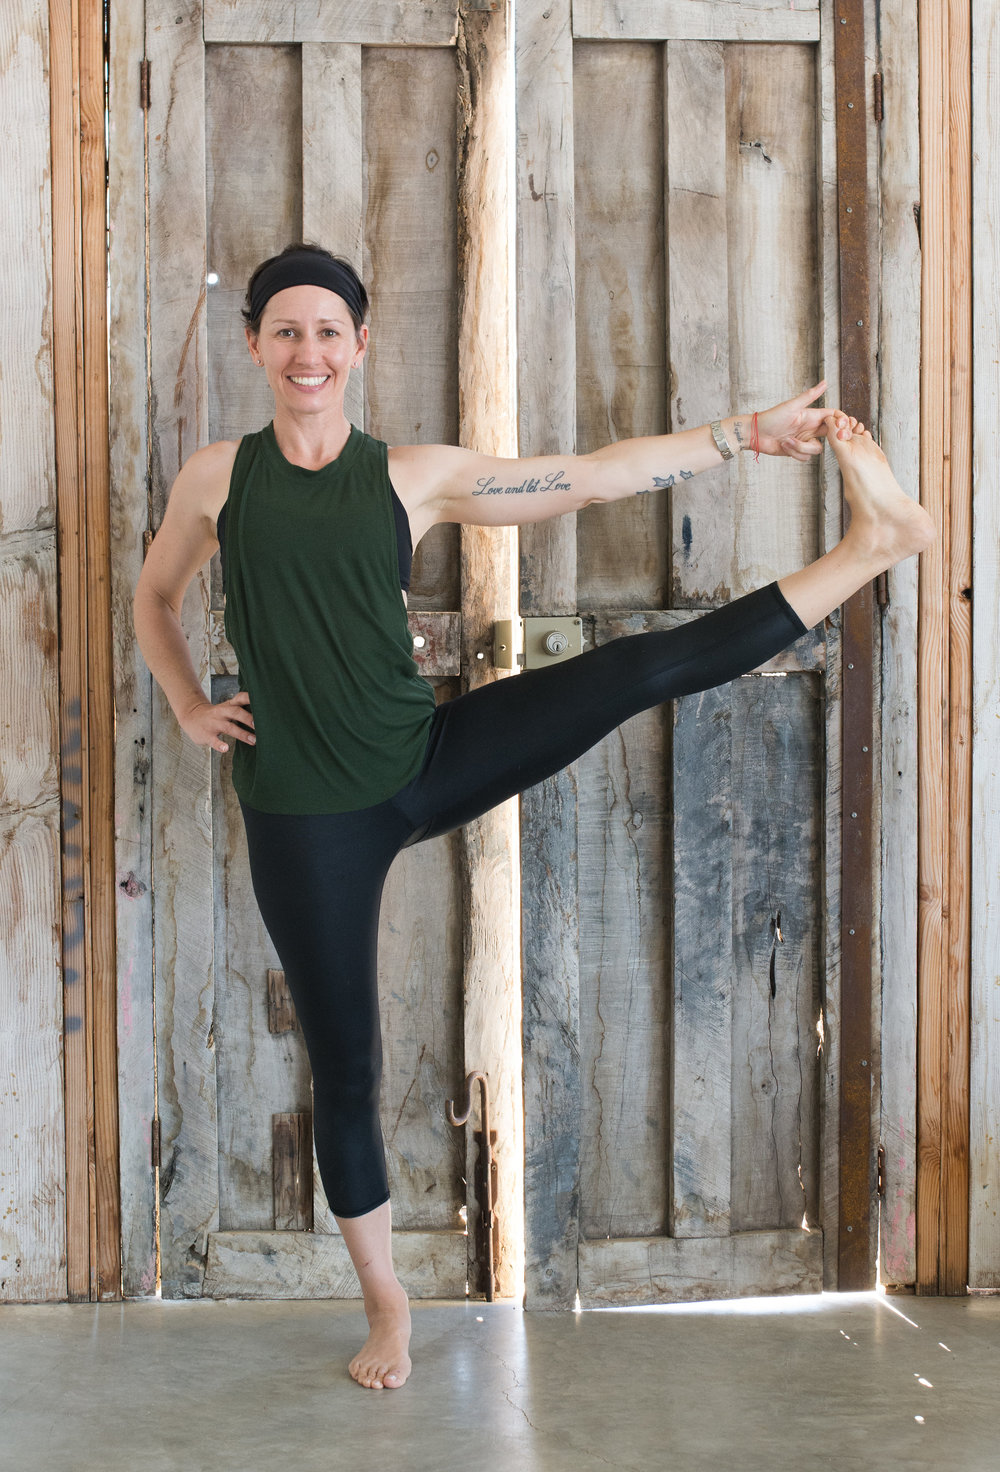 Sara-Mai Conway - Sara-Mai Conway's classes are informed by her athleticism and her practice of Tibetan Buddhism. On this retreat, she'll guide you through the 5 elements with a combination of meditation, movement, and off-the-mat activity.Read her full bio here.